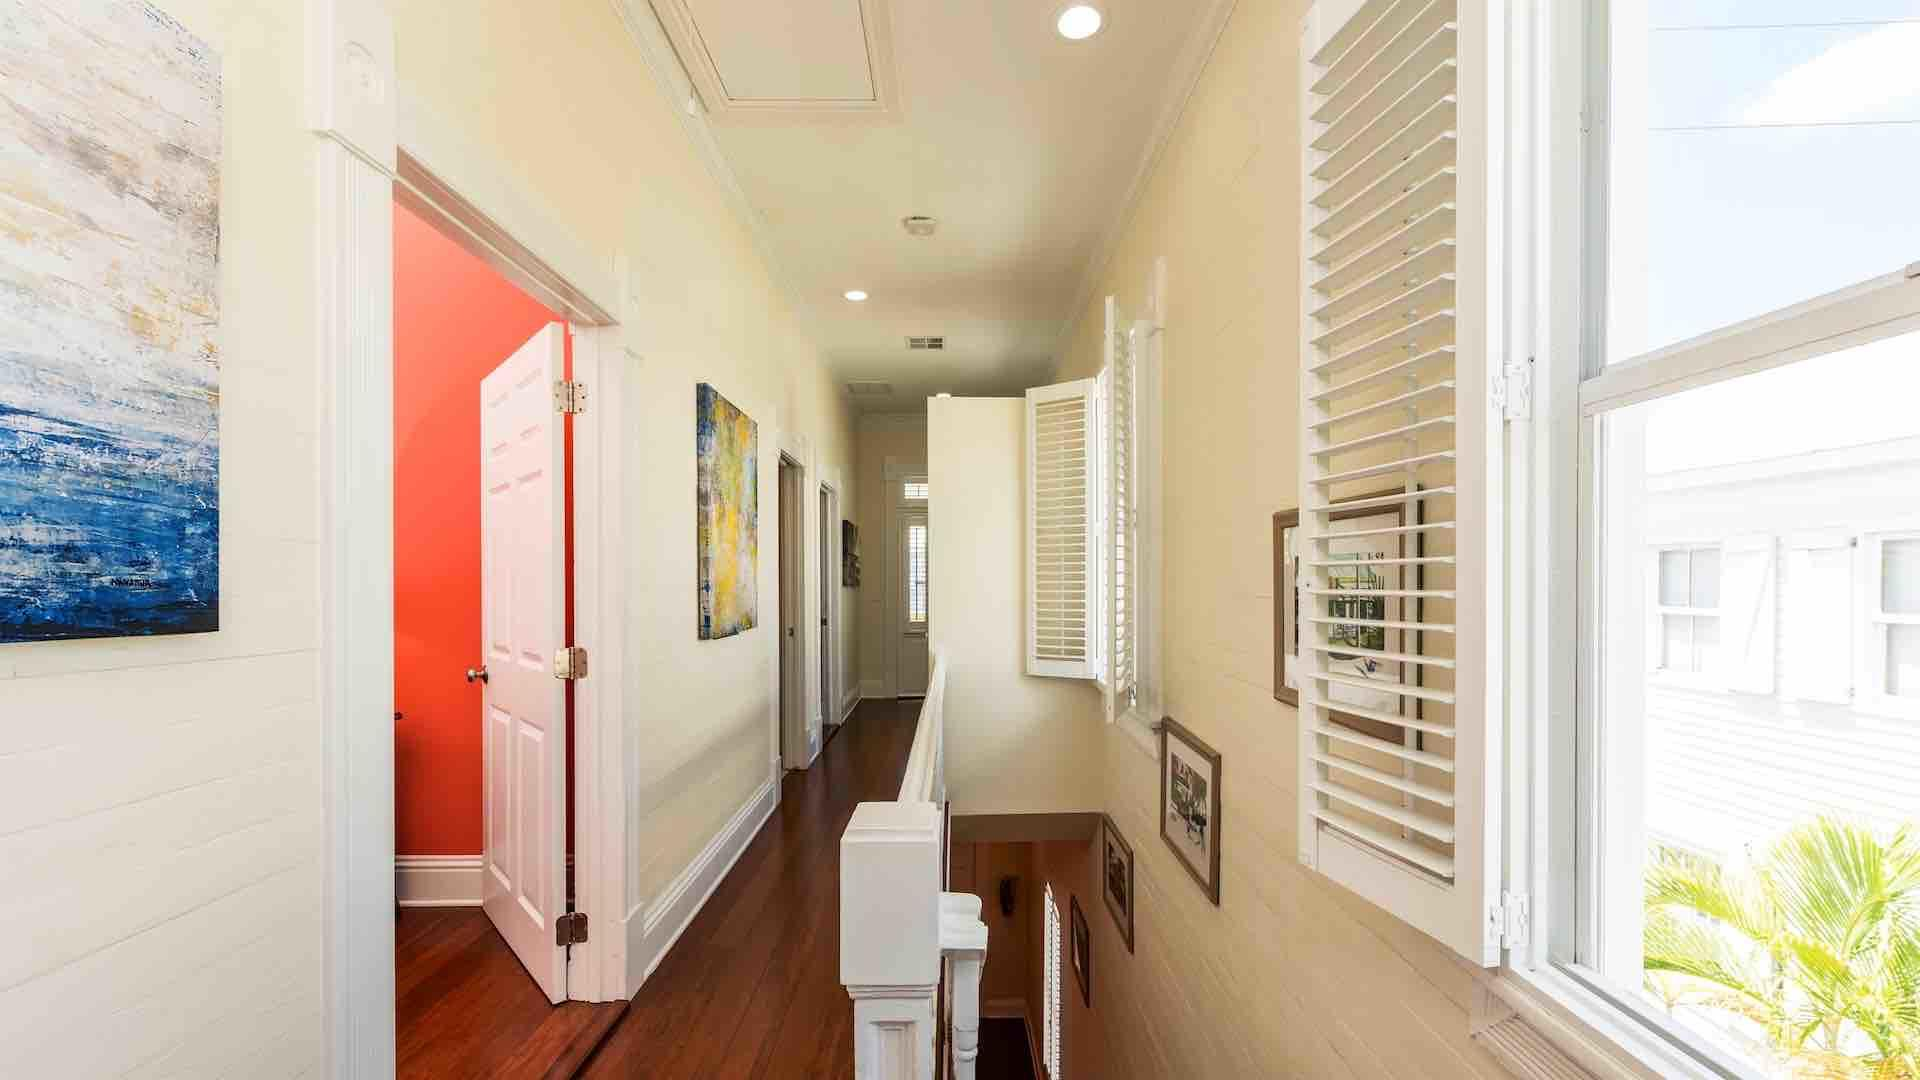 You'll enter the condo through the front door on the first floor and climb the stairs to the second floor...